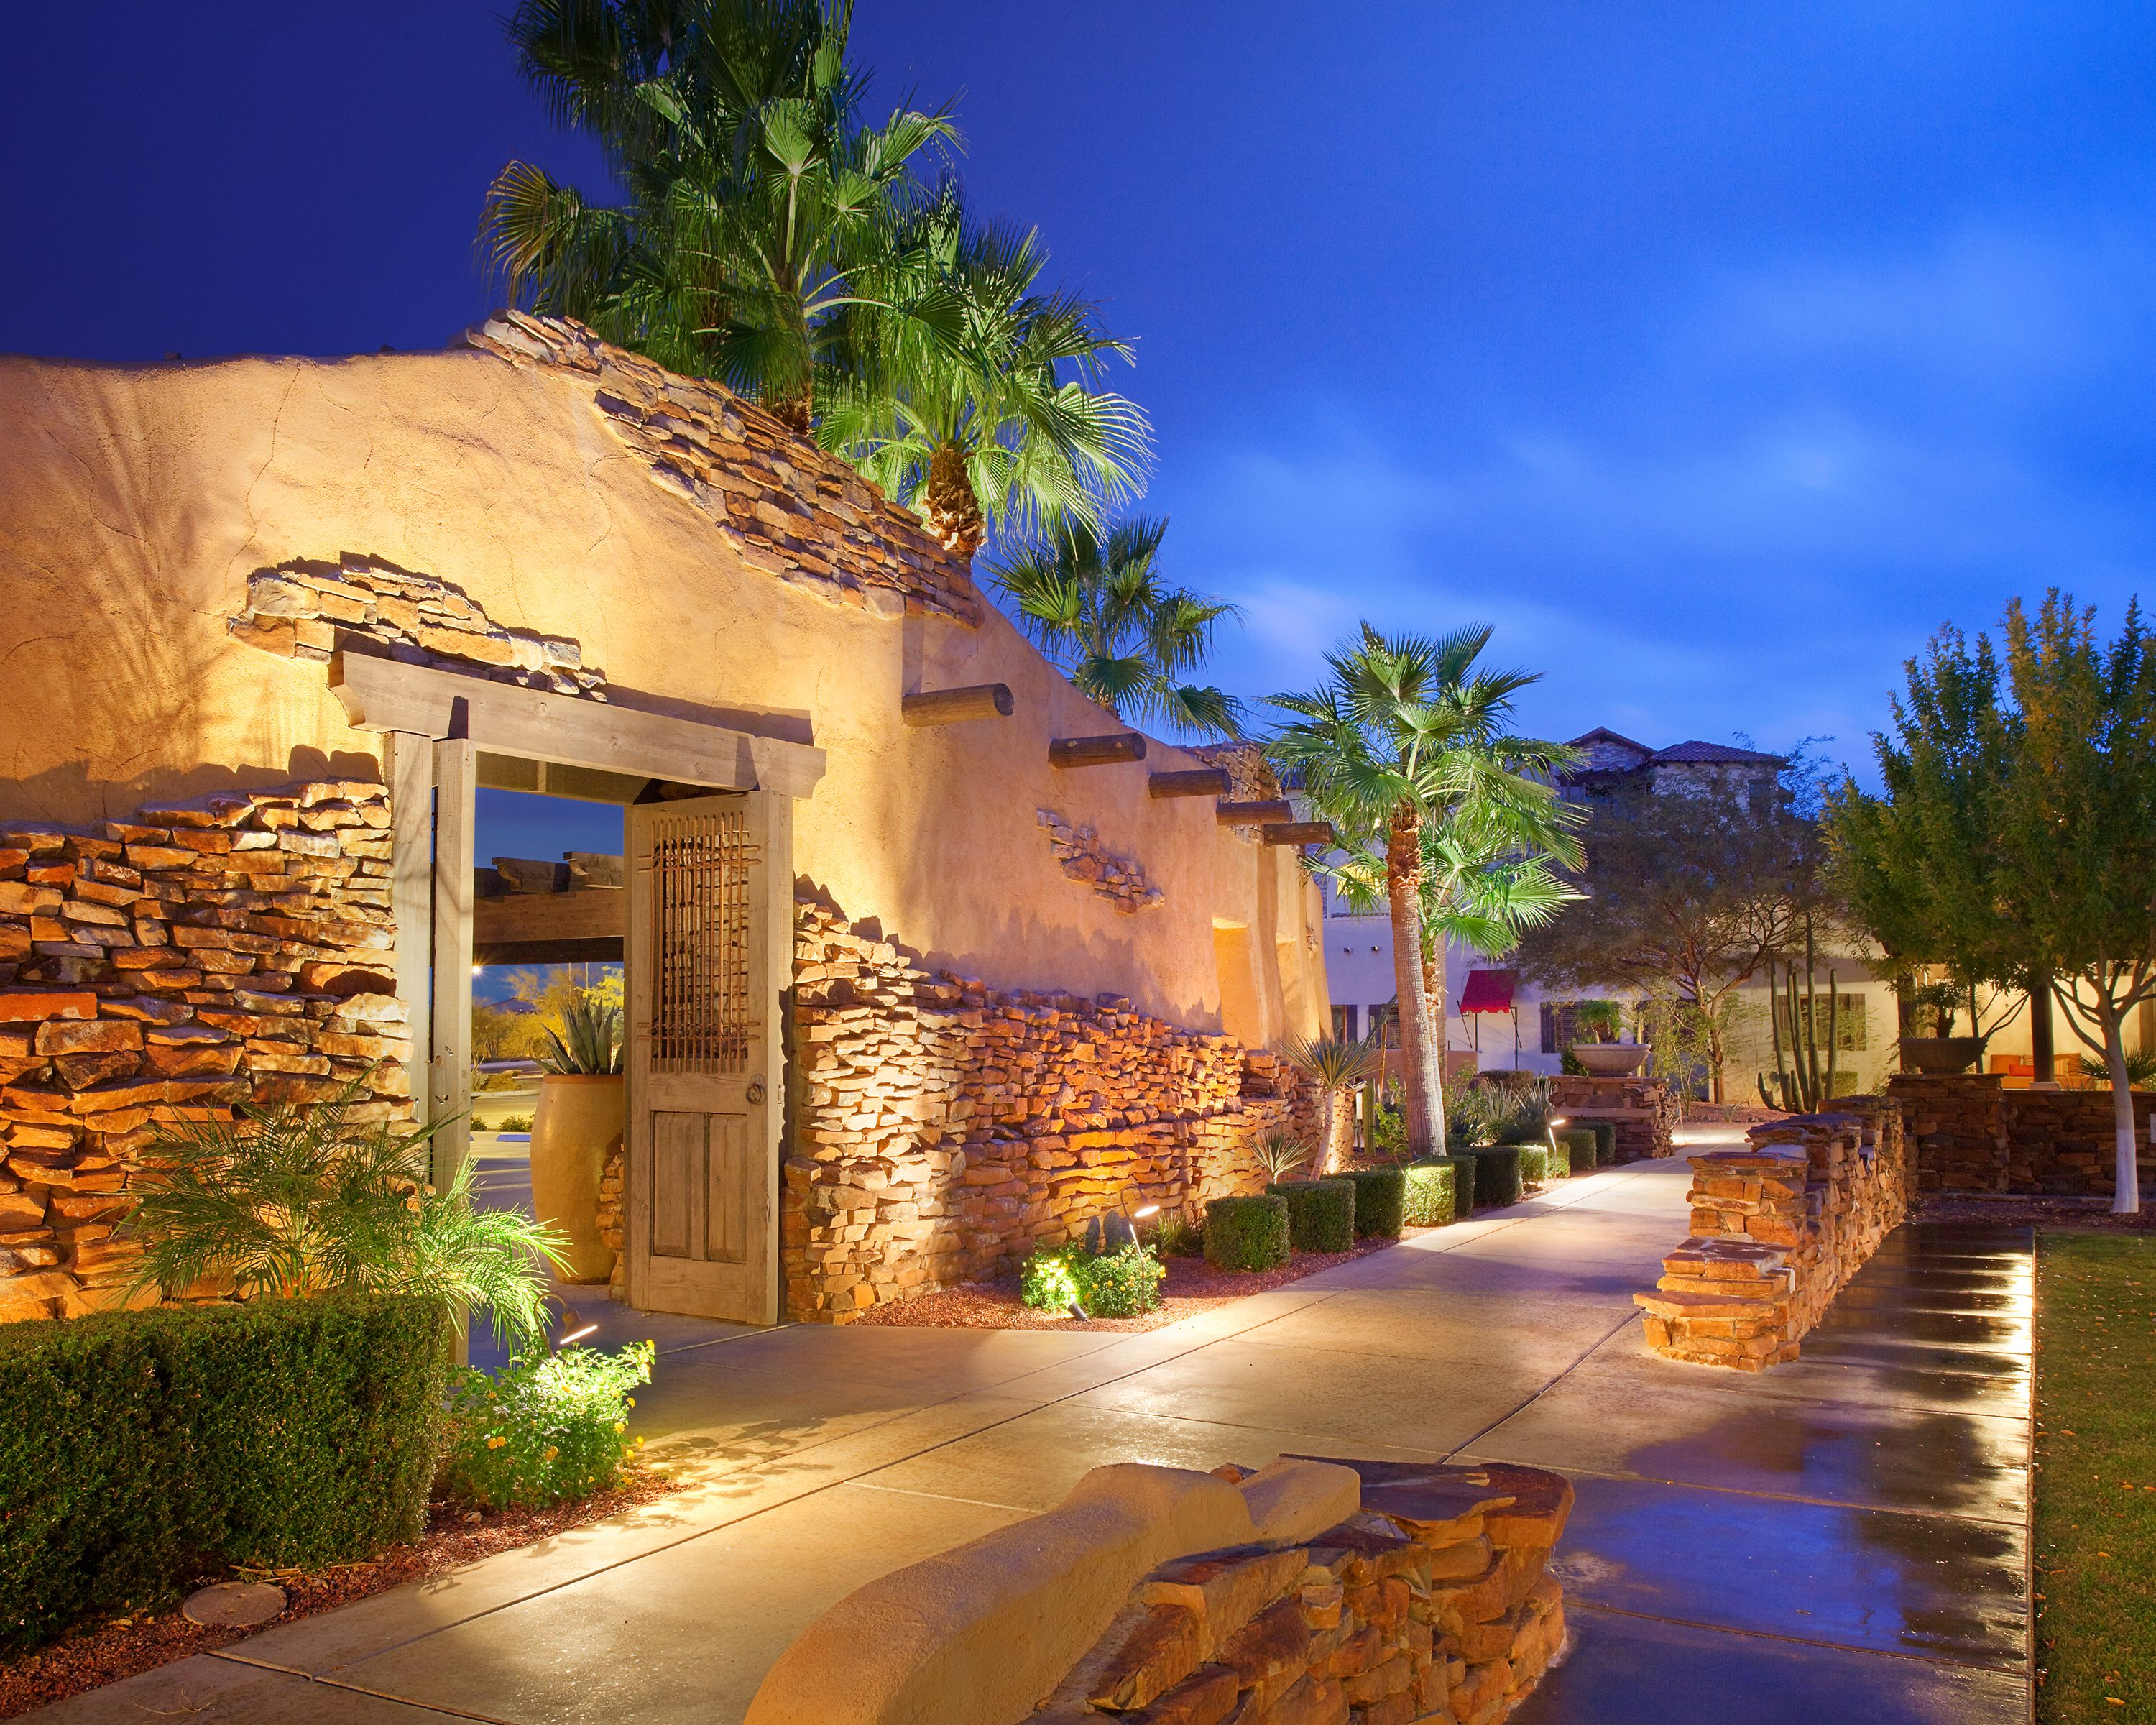 Stroll the beautiful grounds of Bluegreen Vacations Cibola